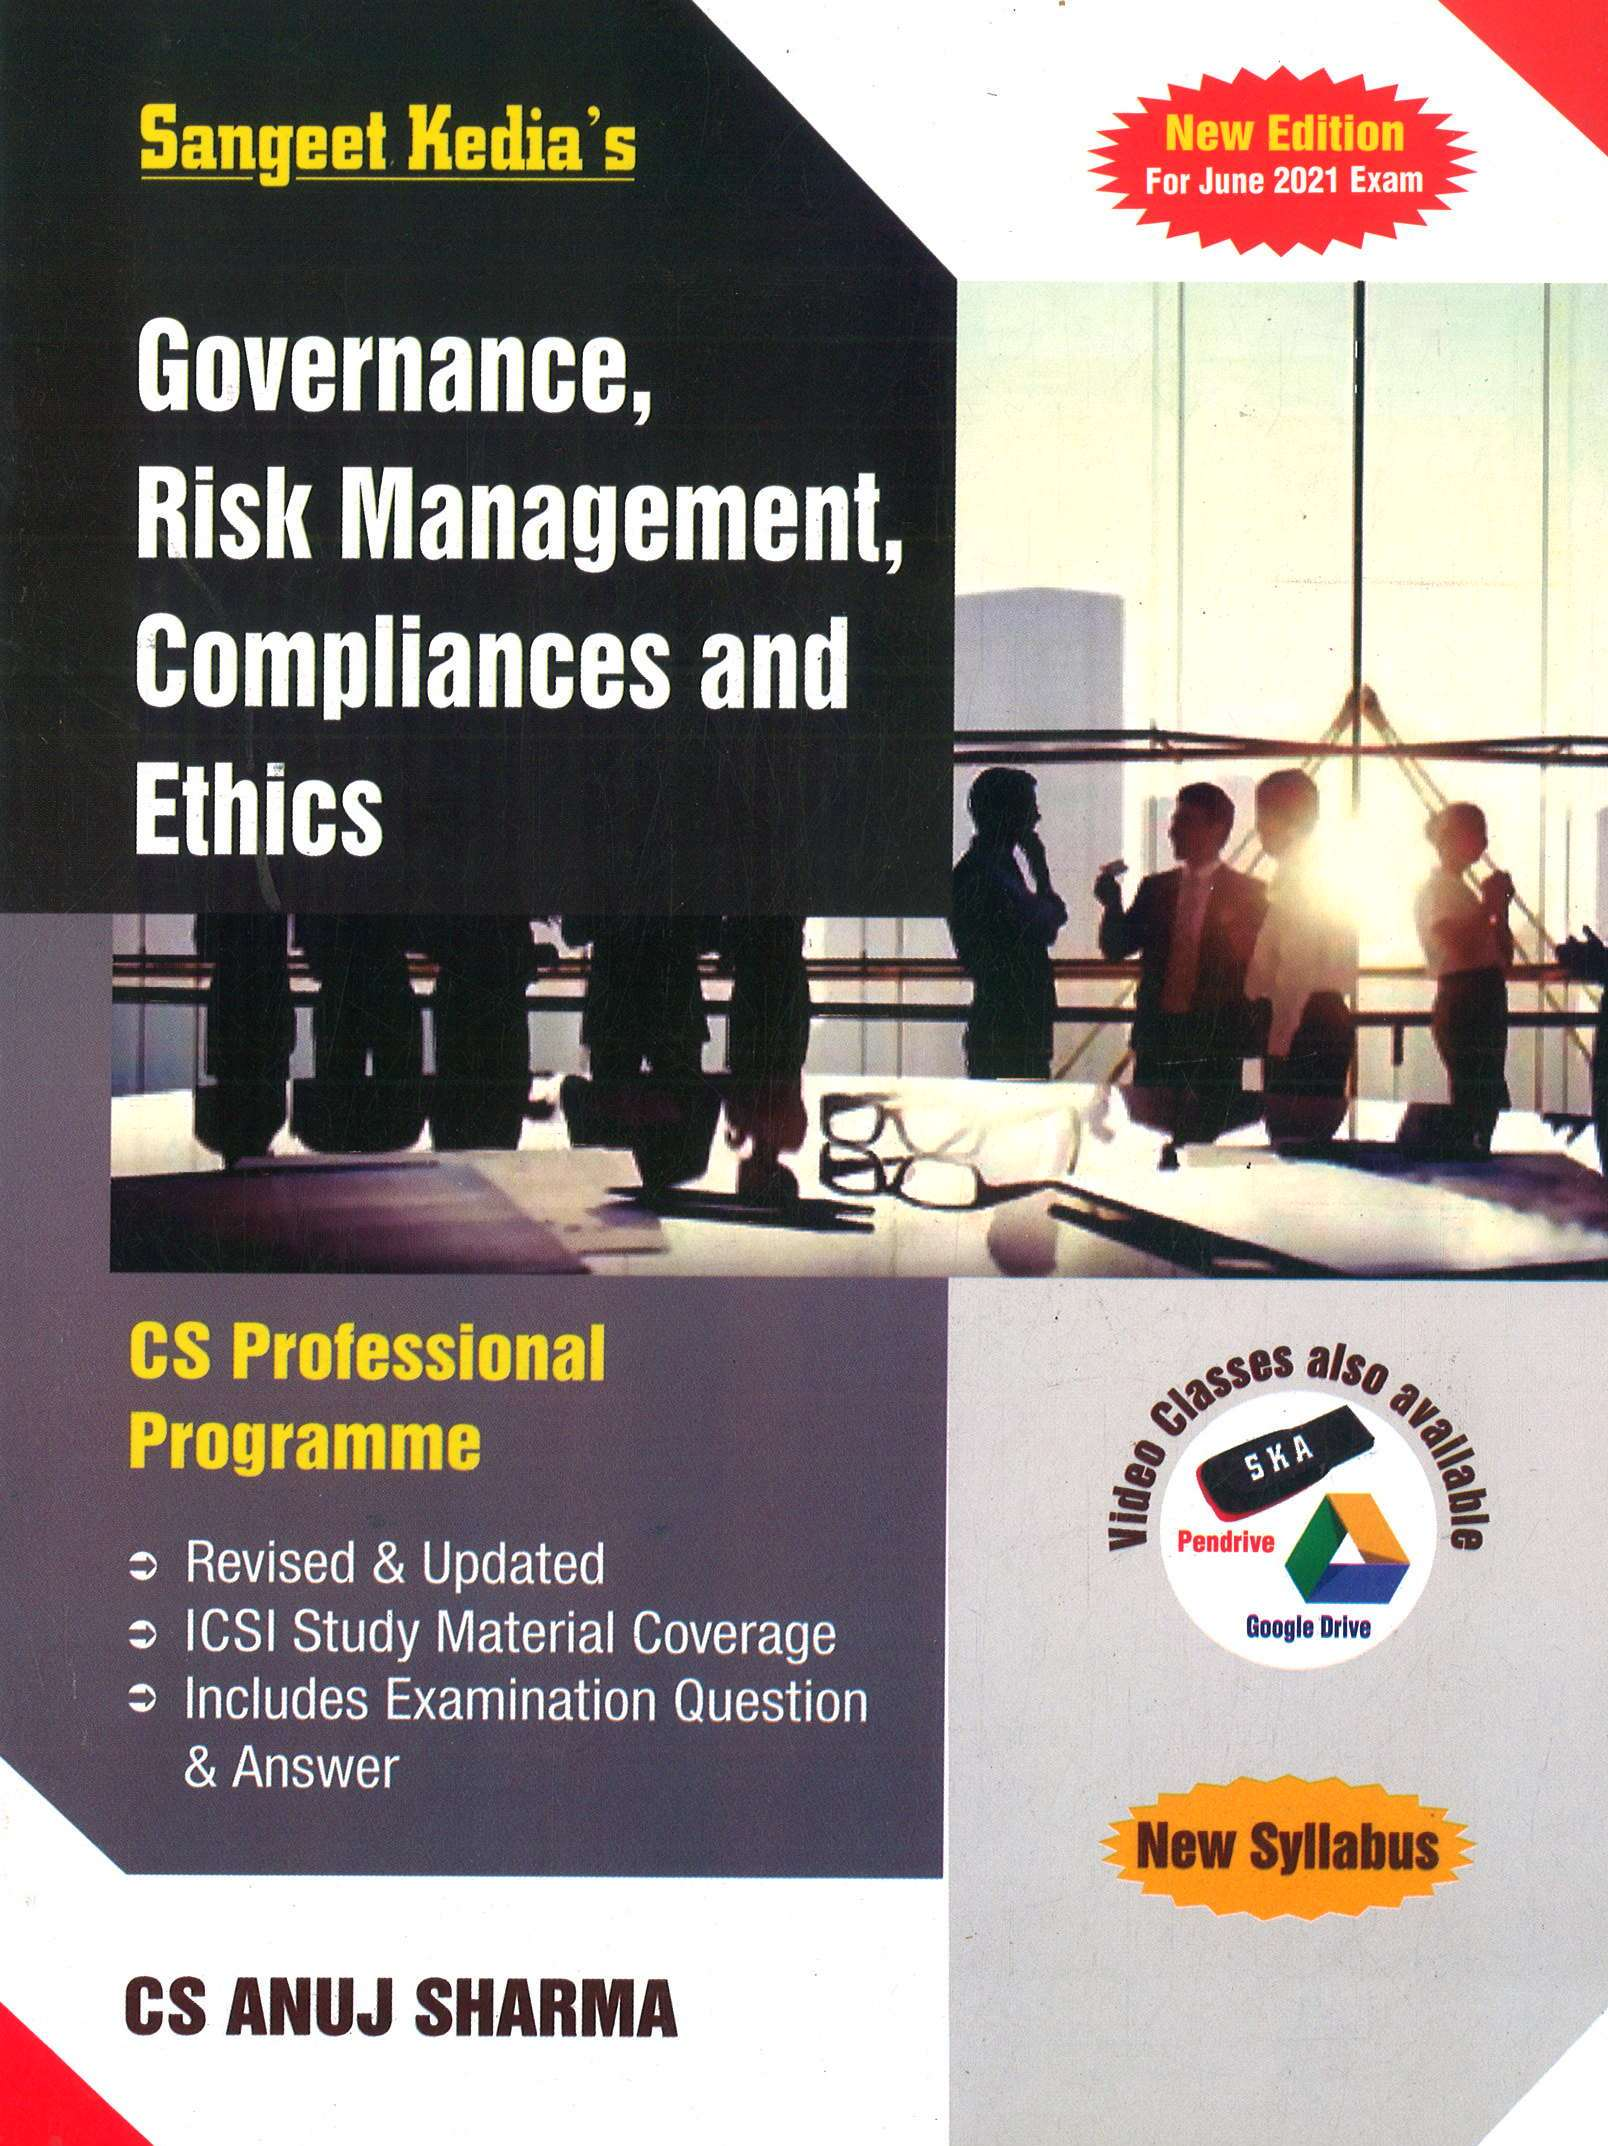 CS Professional Programme Governance Risk Management Compliances and Ethics New Syllabus By CS Sangeet kedia Applicable for 2021 Exam